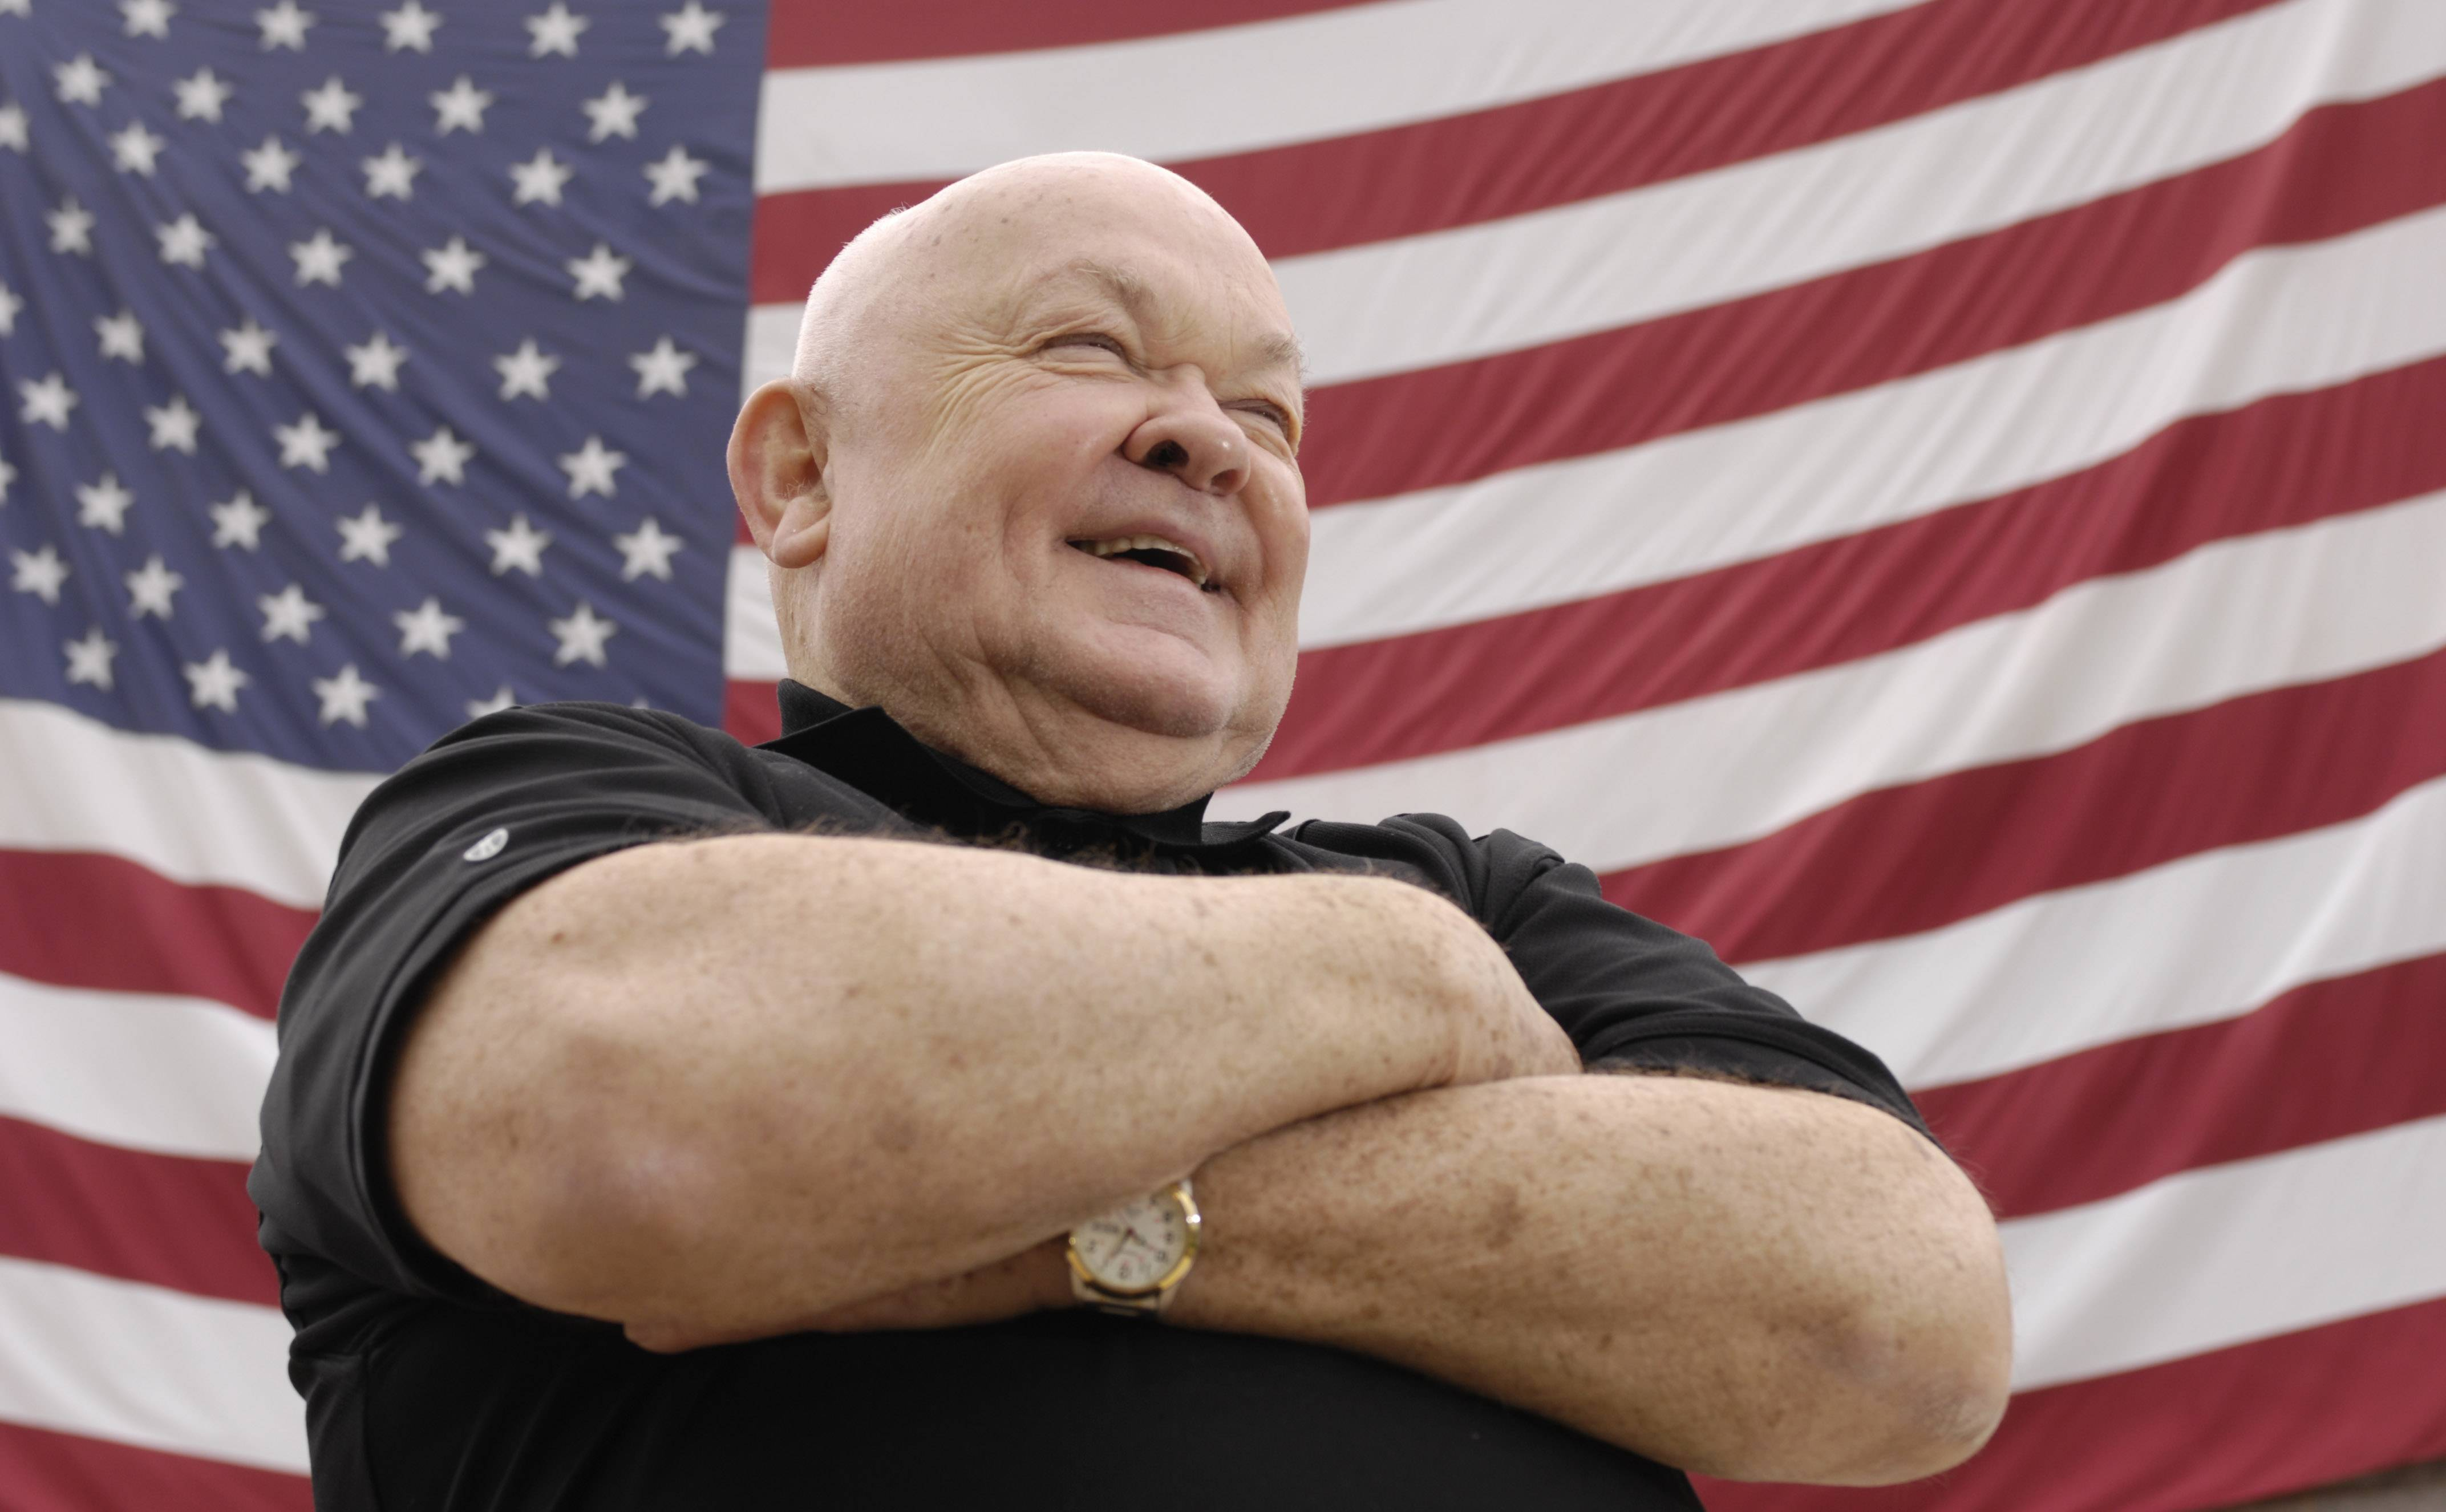 Naperville is remembering former Mayor George Pradel, the longest-serving mayor in the city's history.